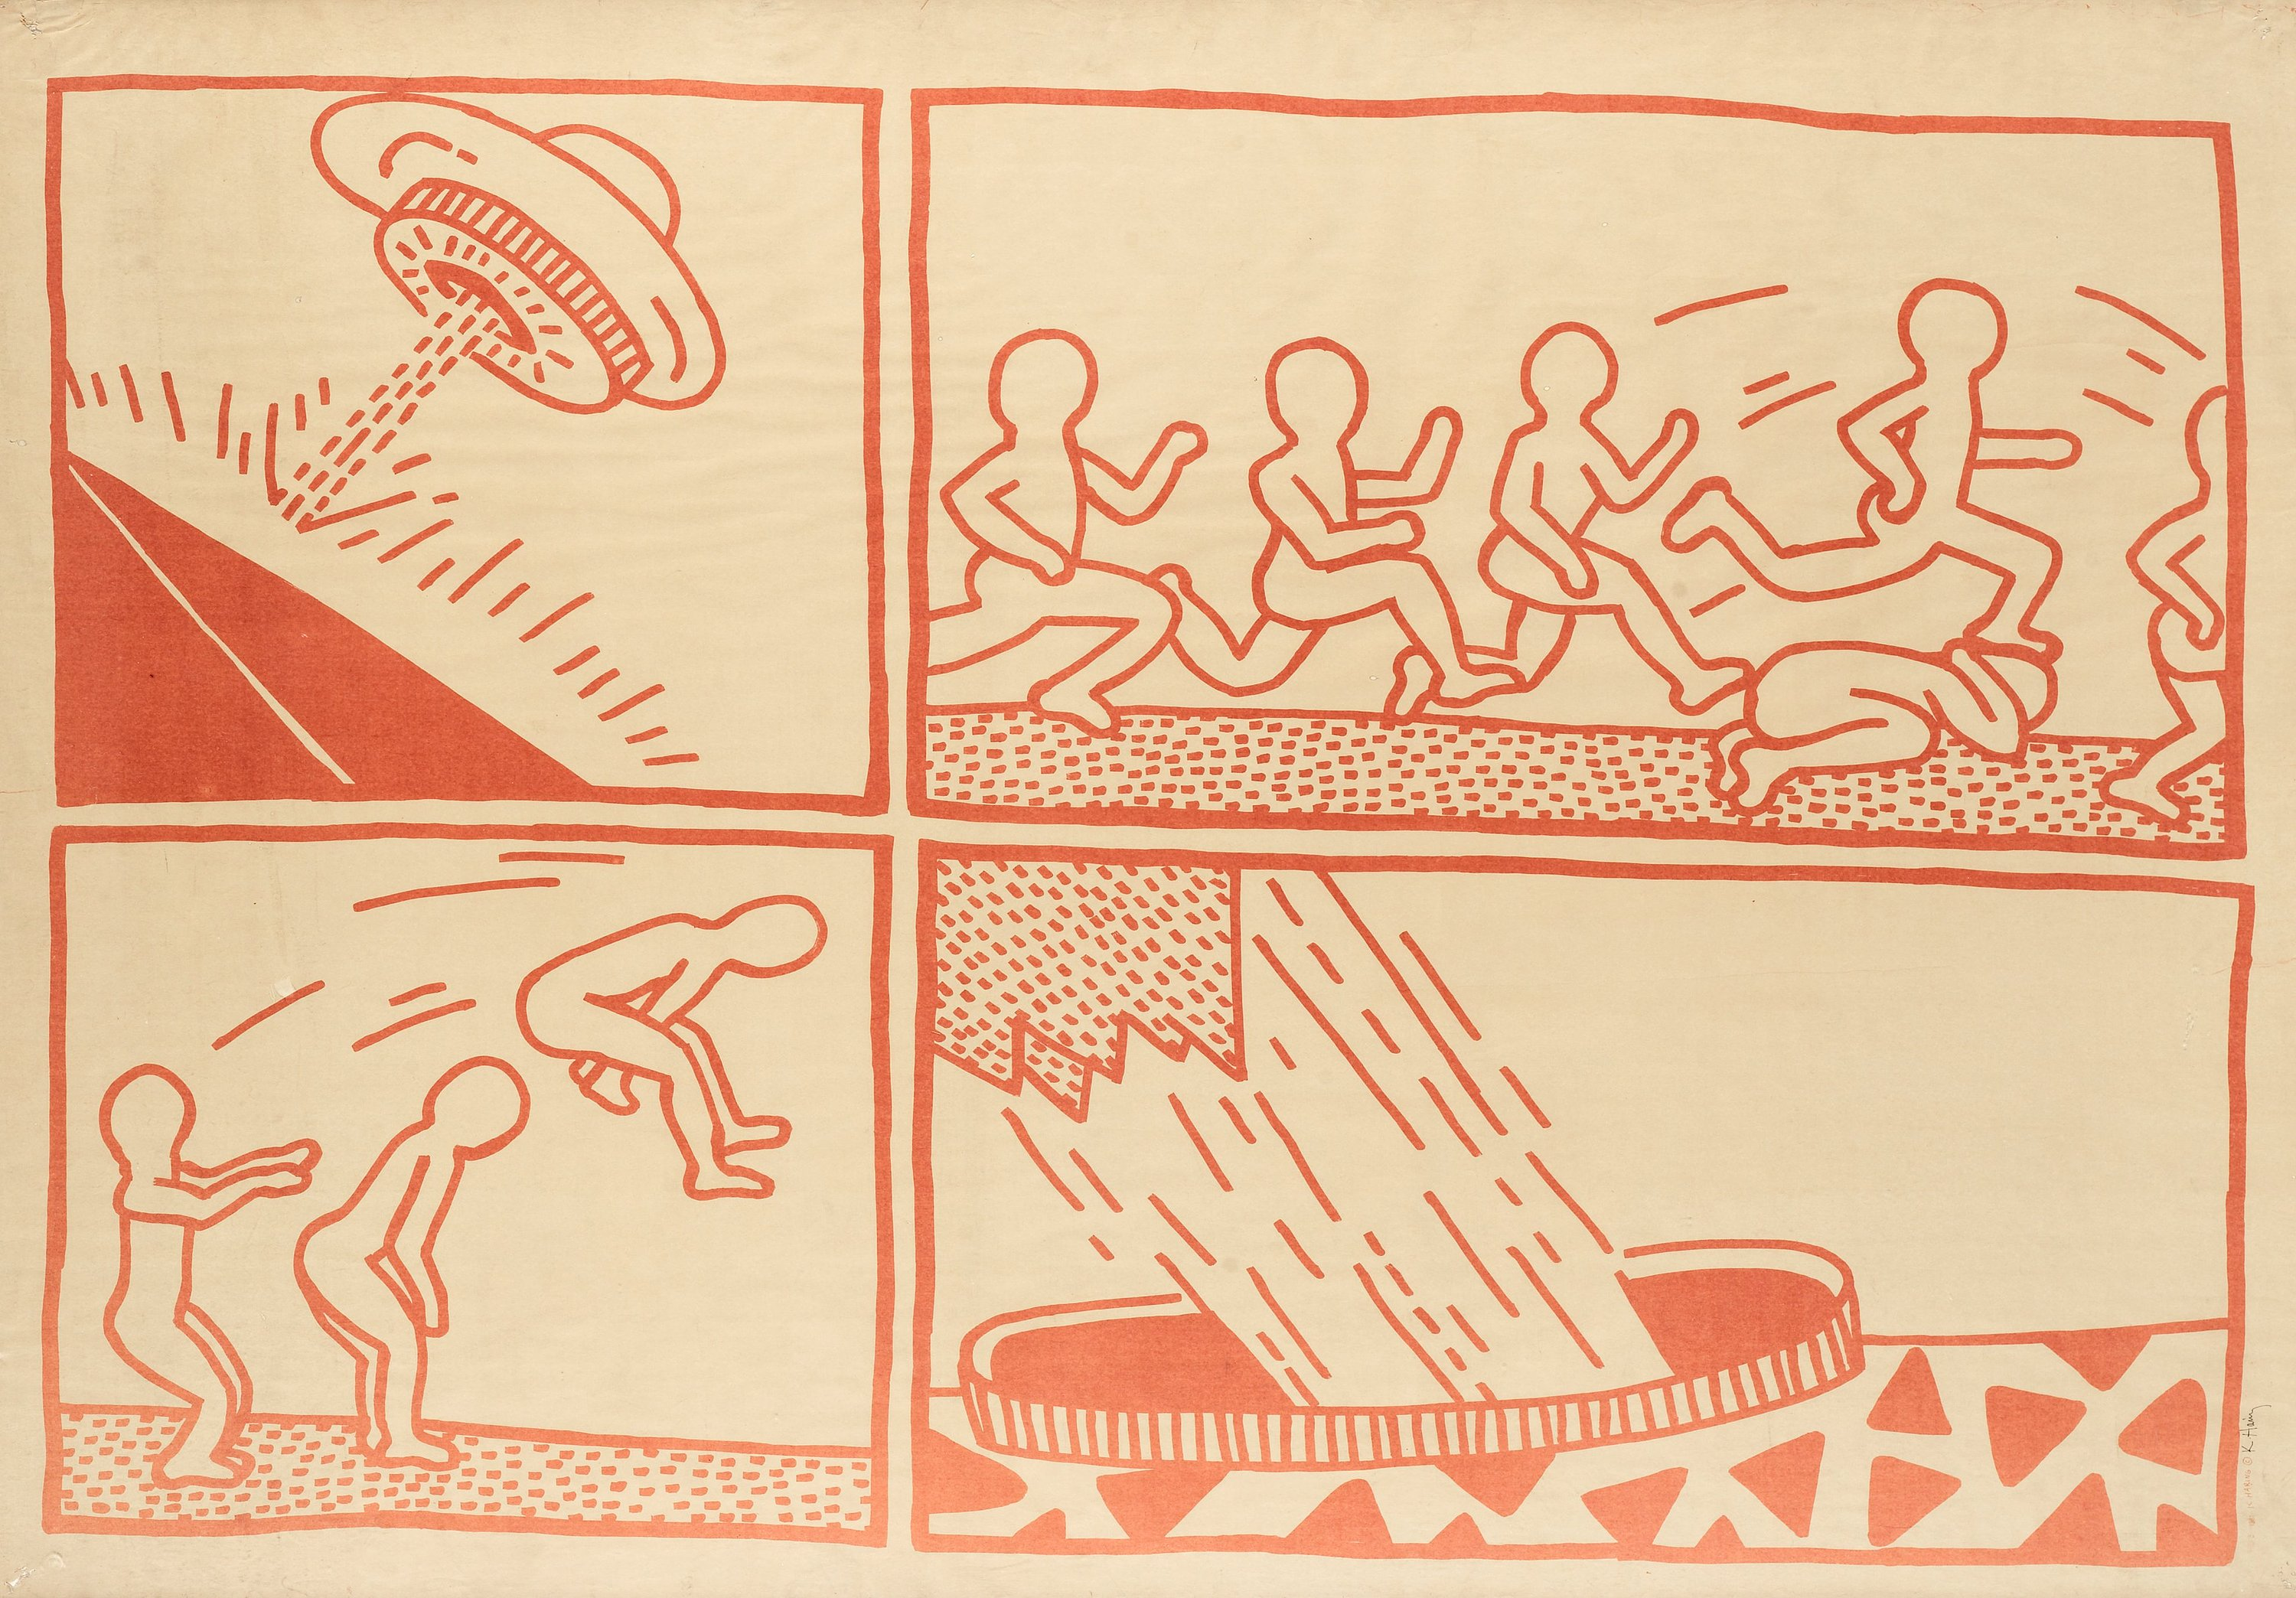 Keith haring blueprint drawing bukowskis malvernweather Images